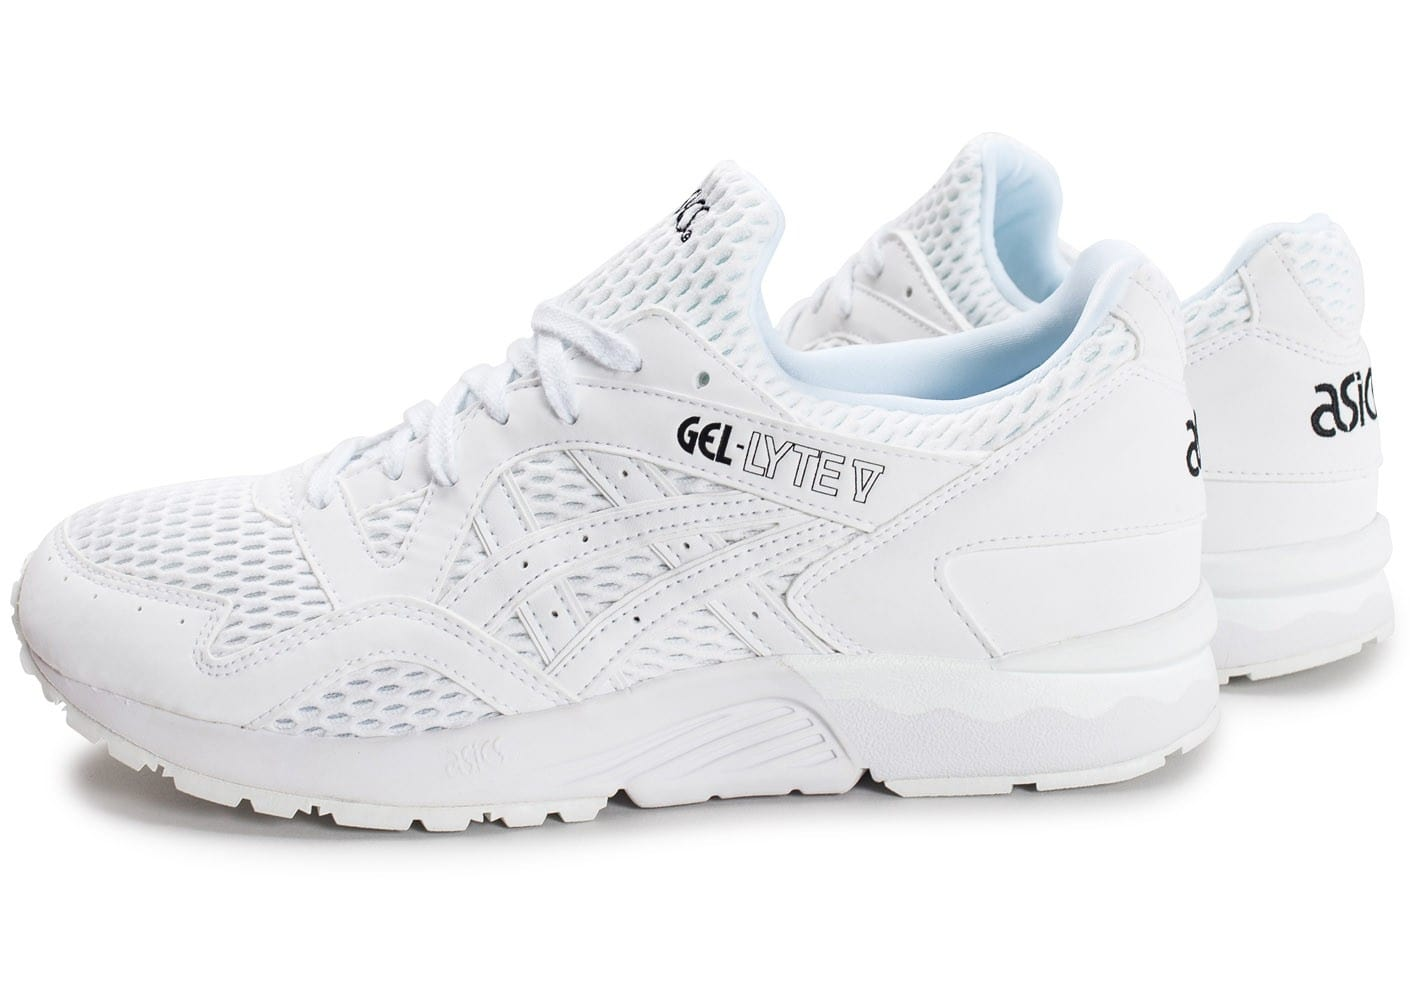 asics gel lyte v blanche chaussures baskets homme chausport. Black Bedroom Furniture Sets. Home Design Ideas